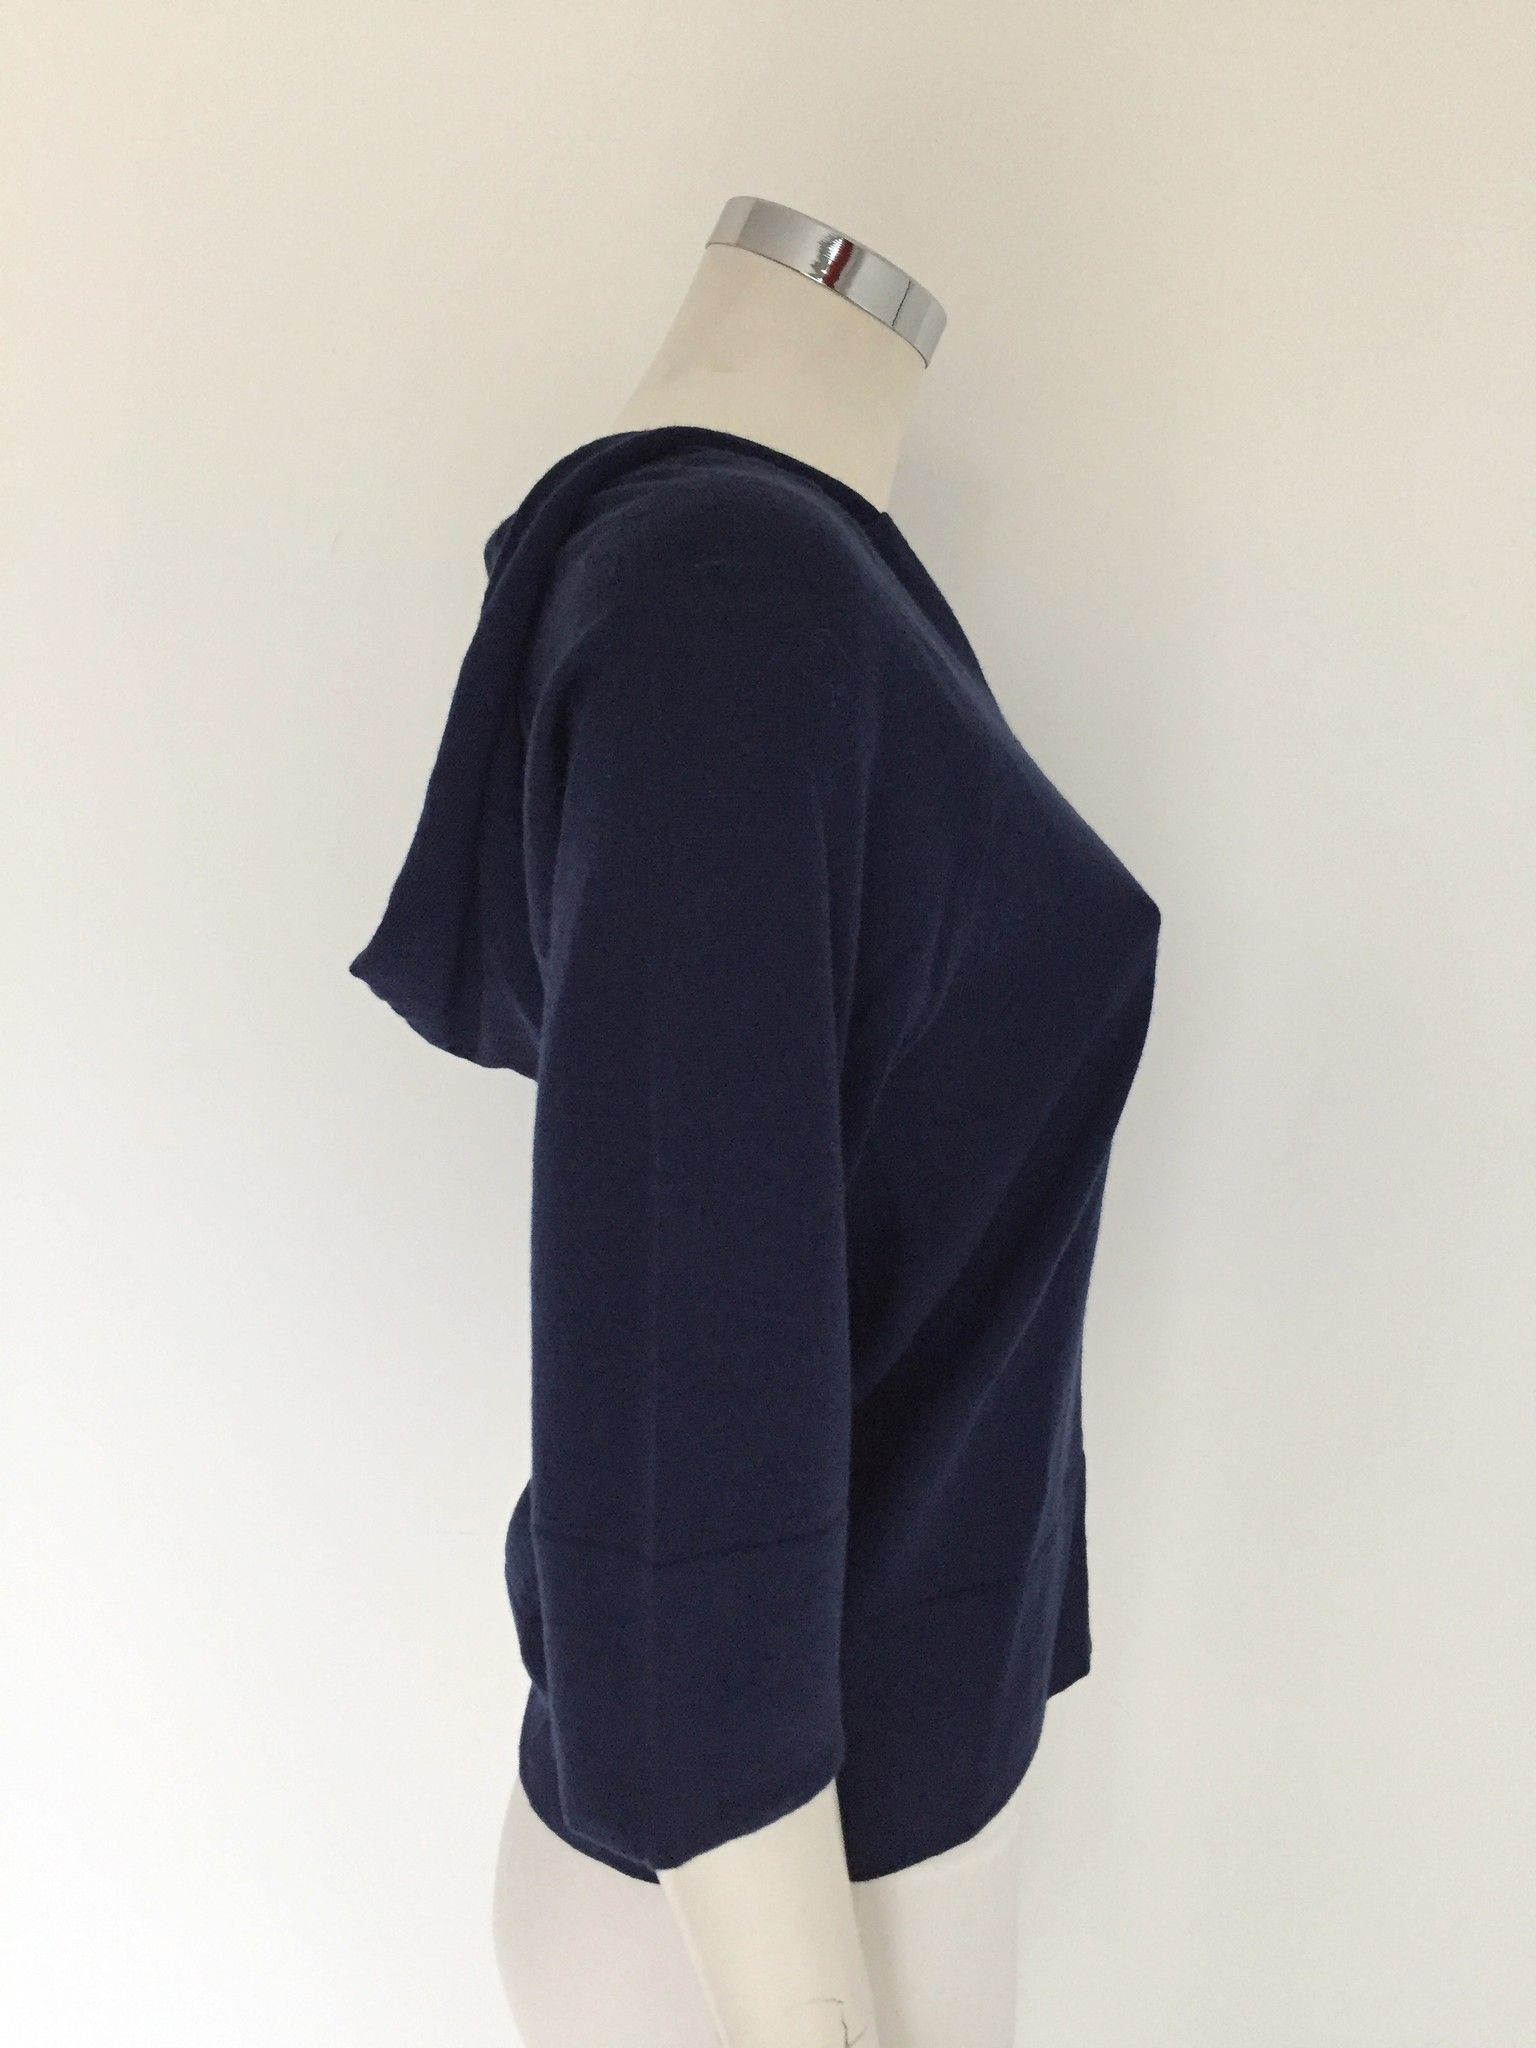 Short Sweater with Buttons on the Sides Cod.15IV802